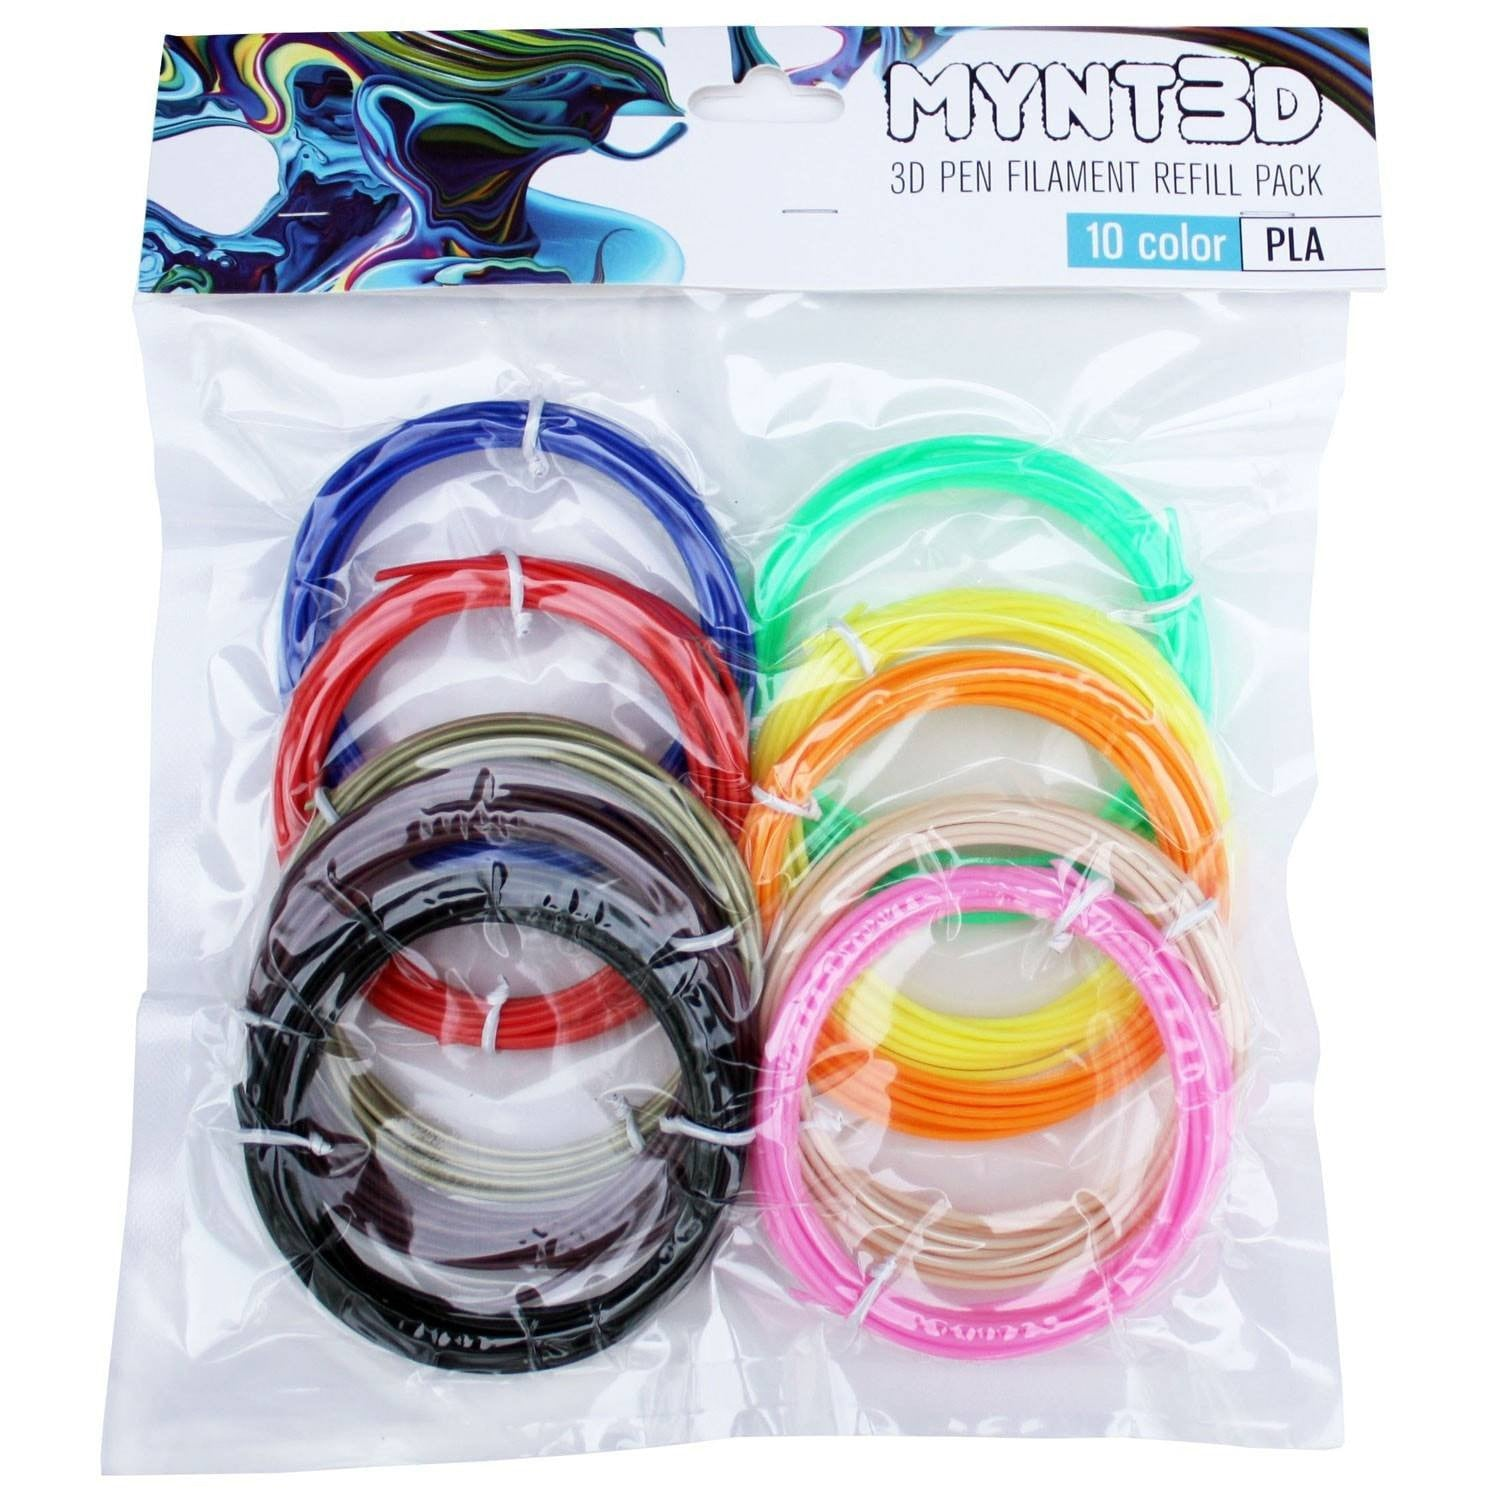 PLA Filament Refill Pack (10 color, 3m Each)